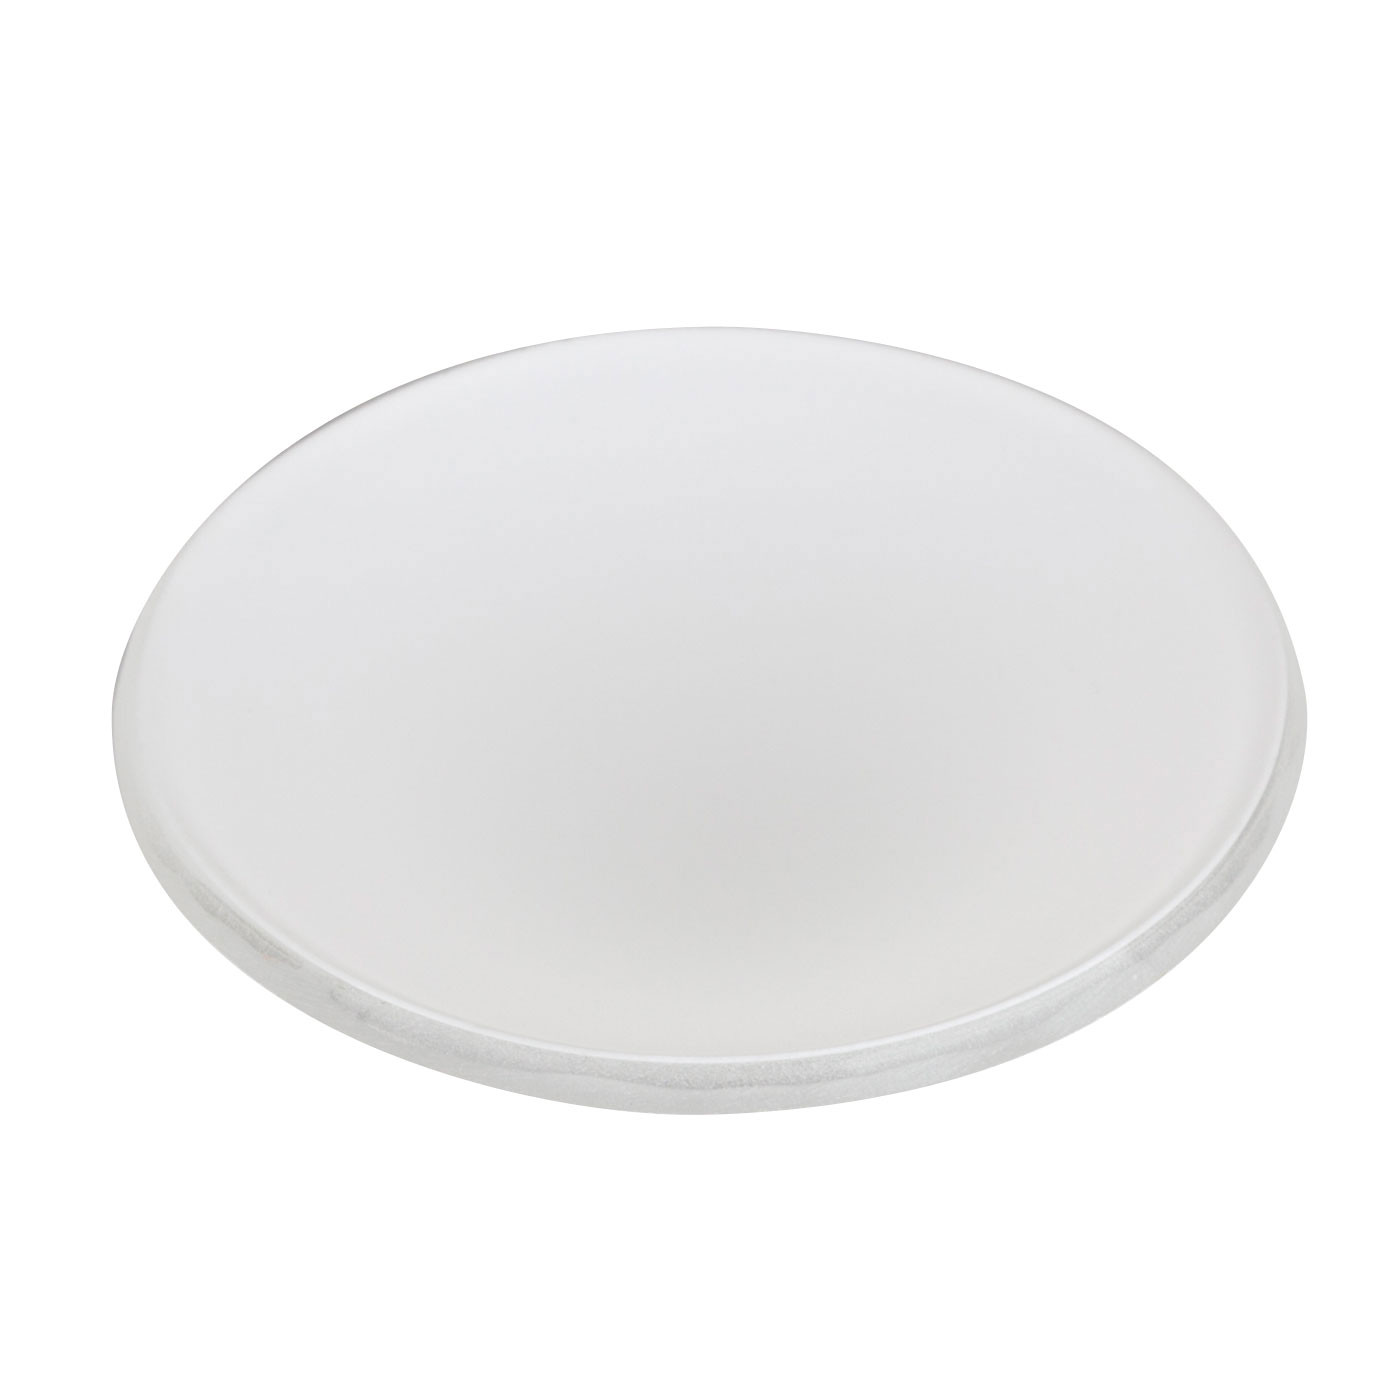 Flos Moni replacement glas lense